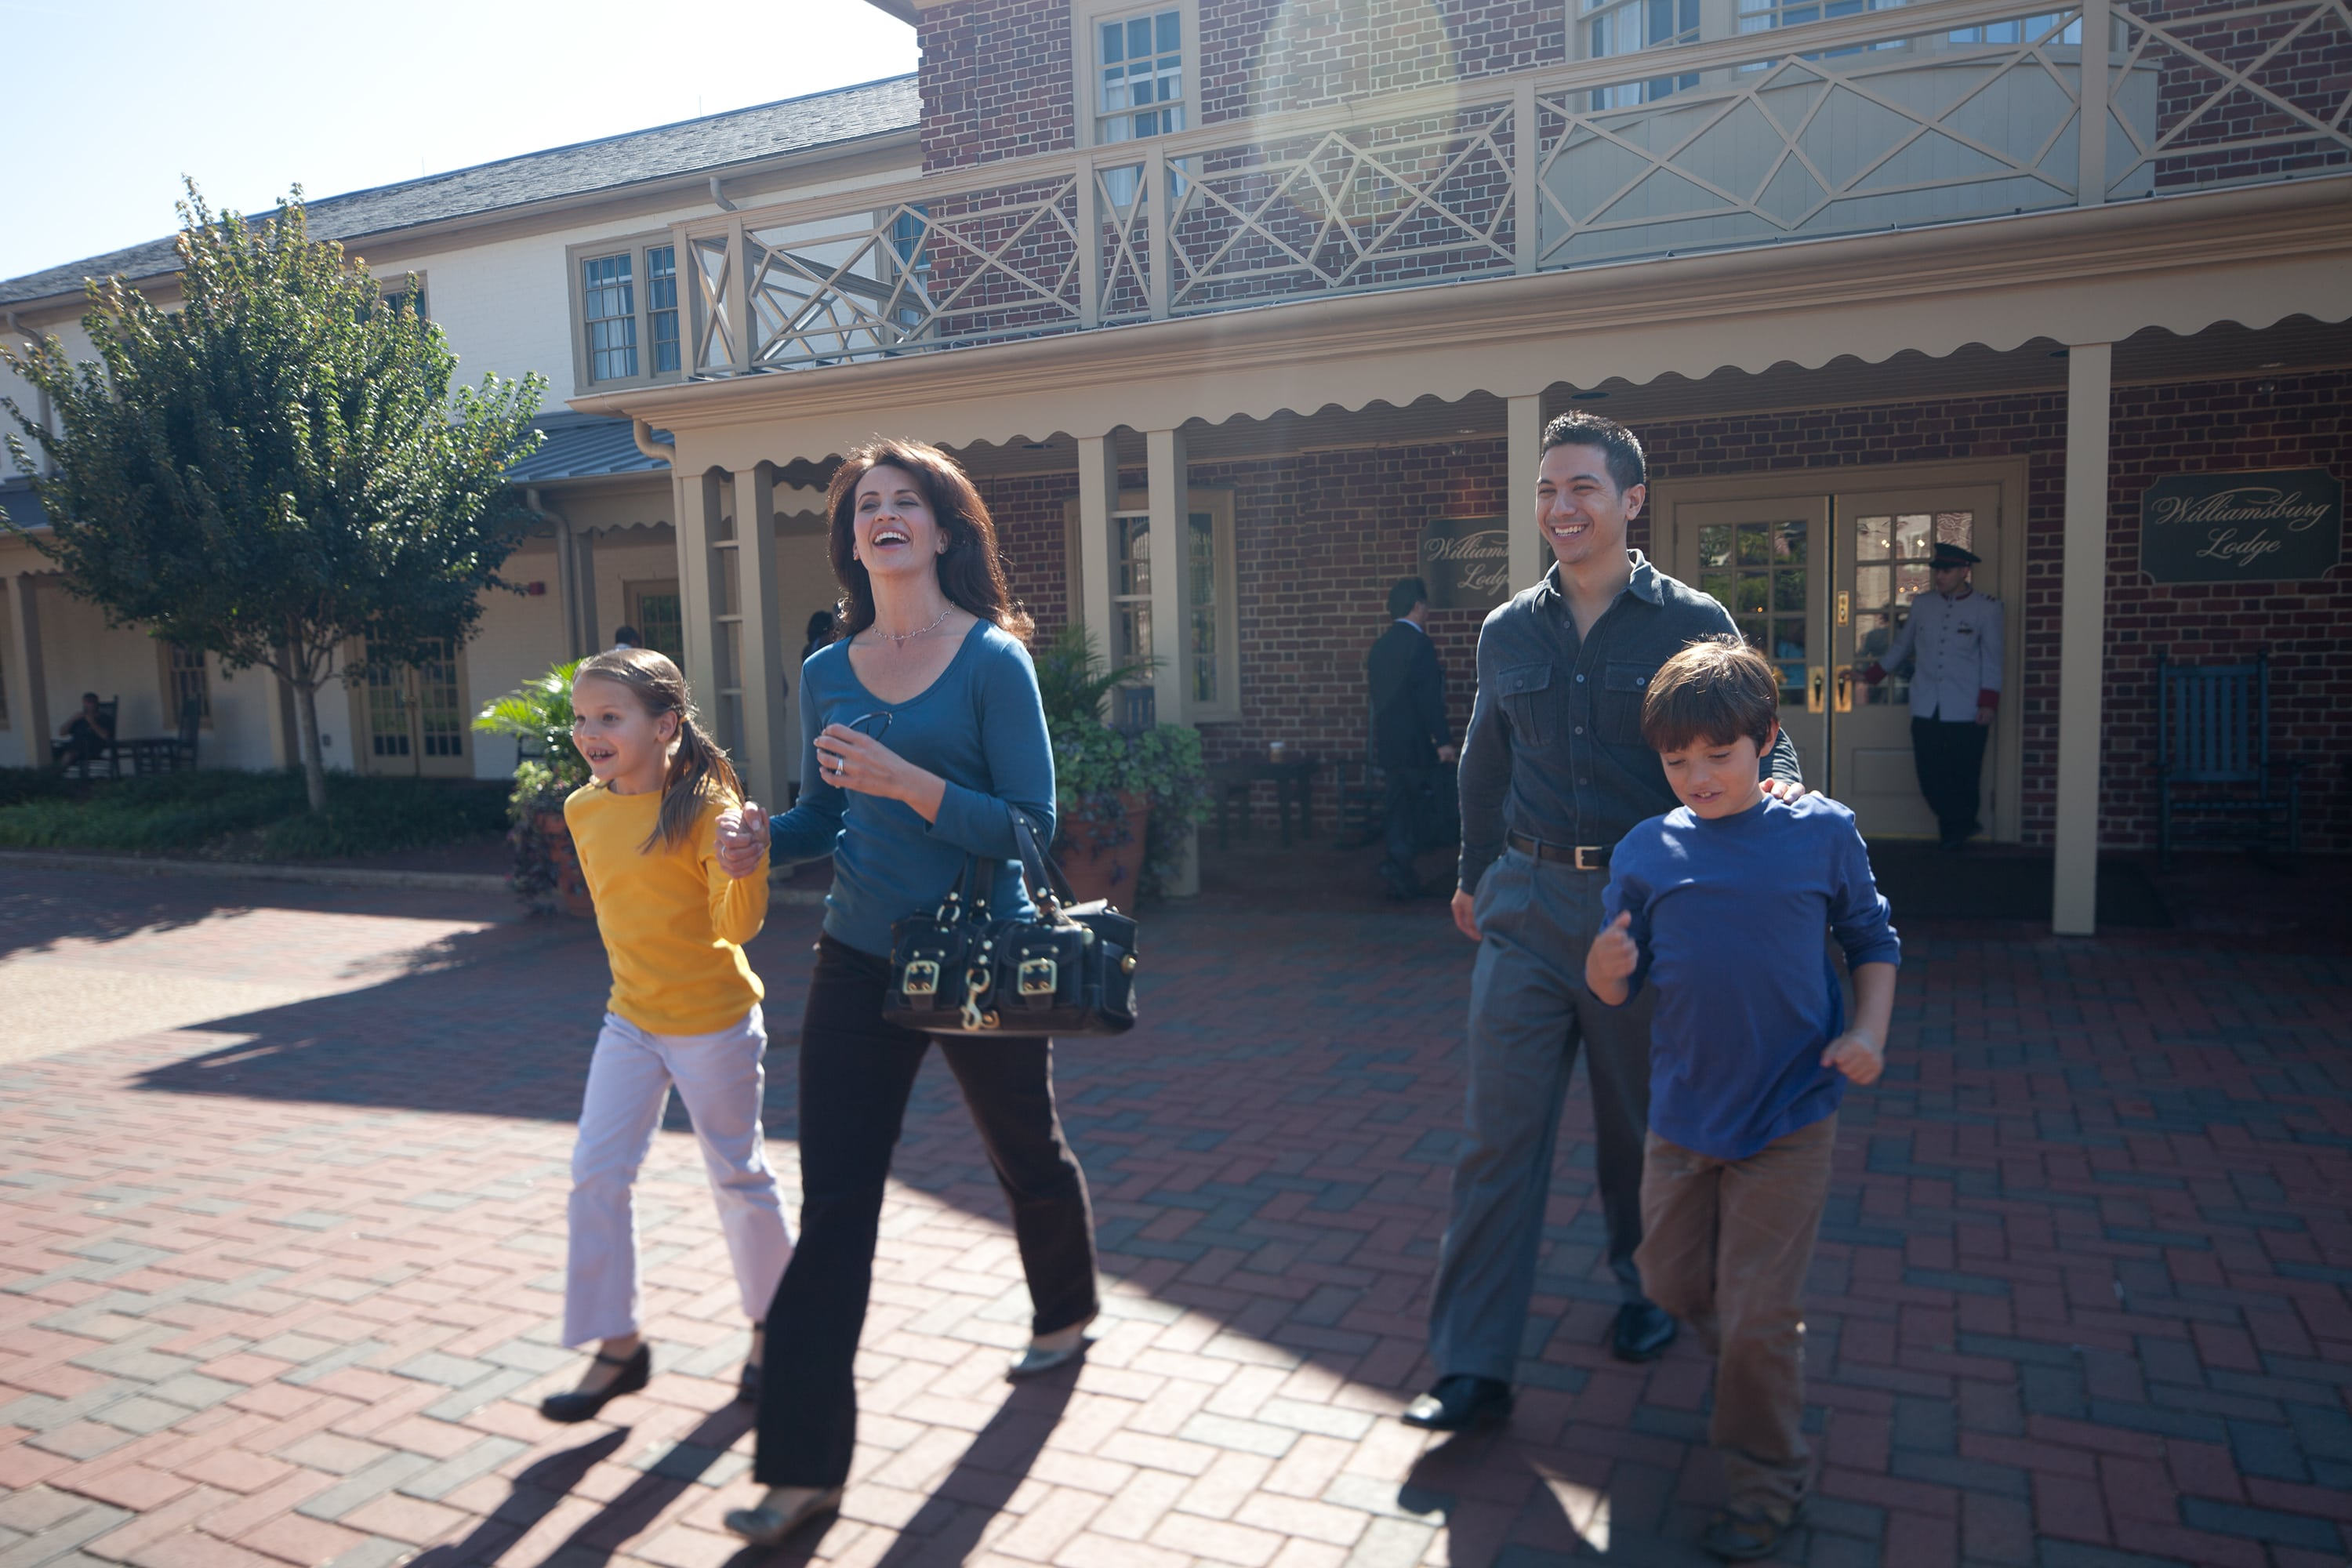 Heading out for a day in Colonial Williamsburg